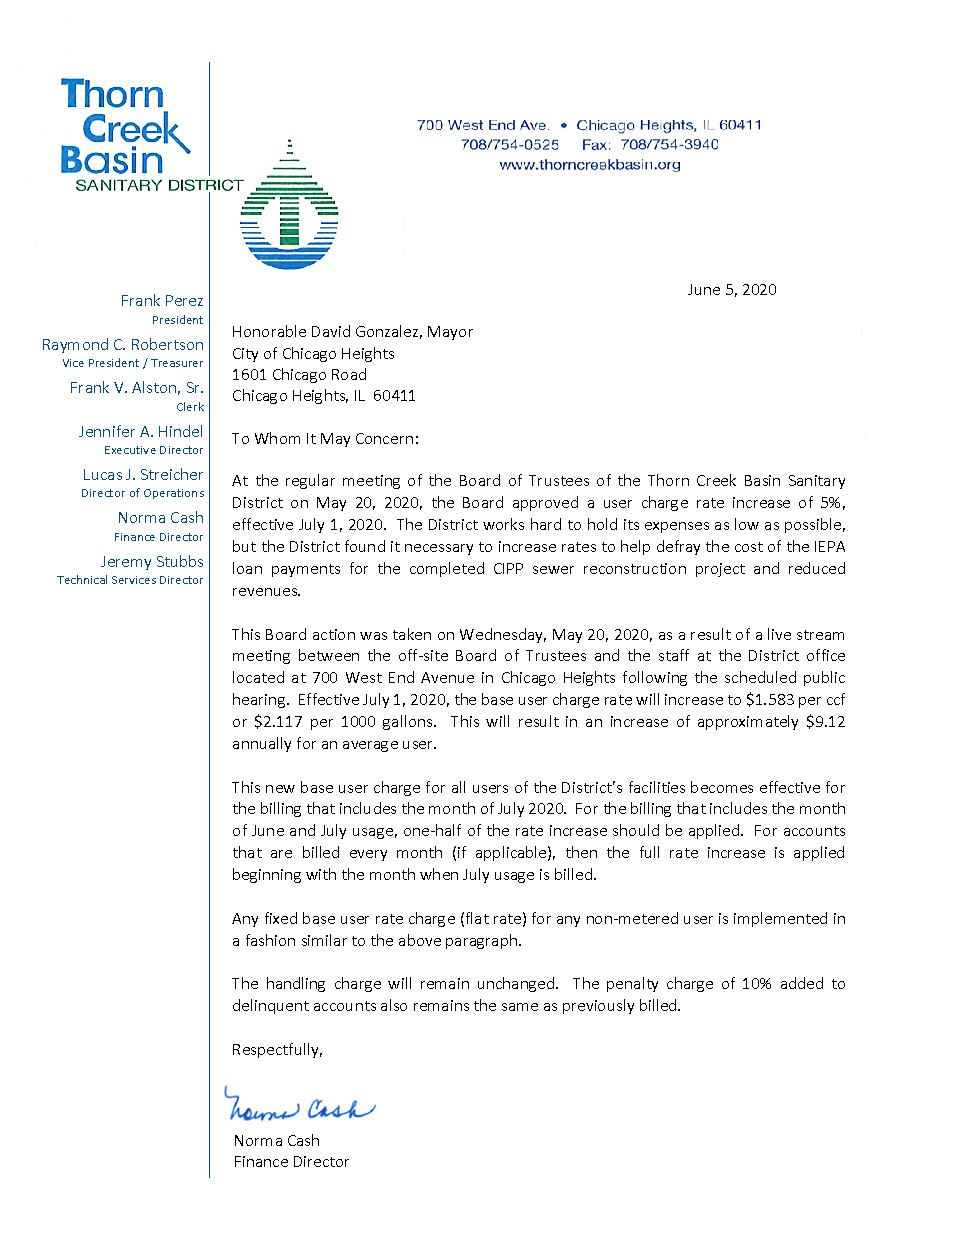 Thorn Creek Basin Letter